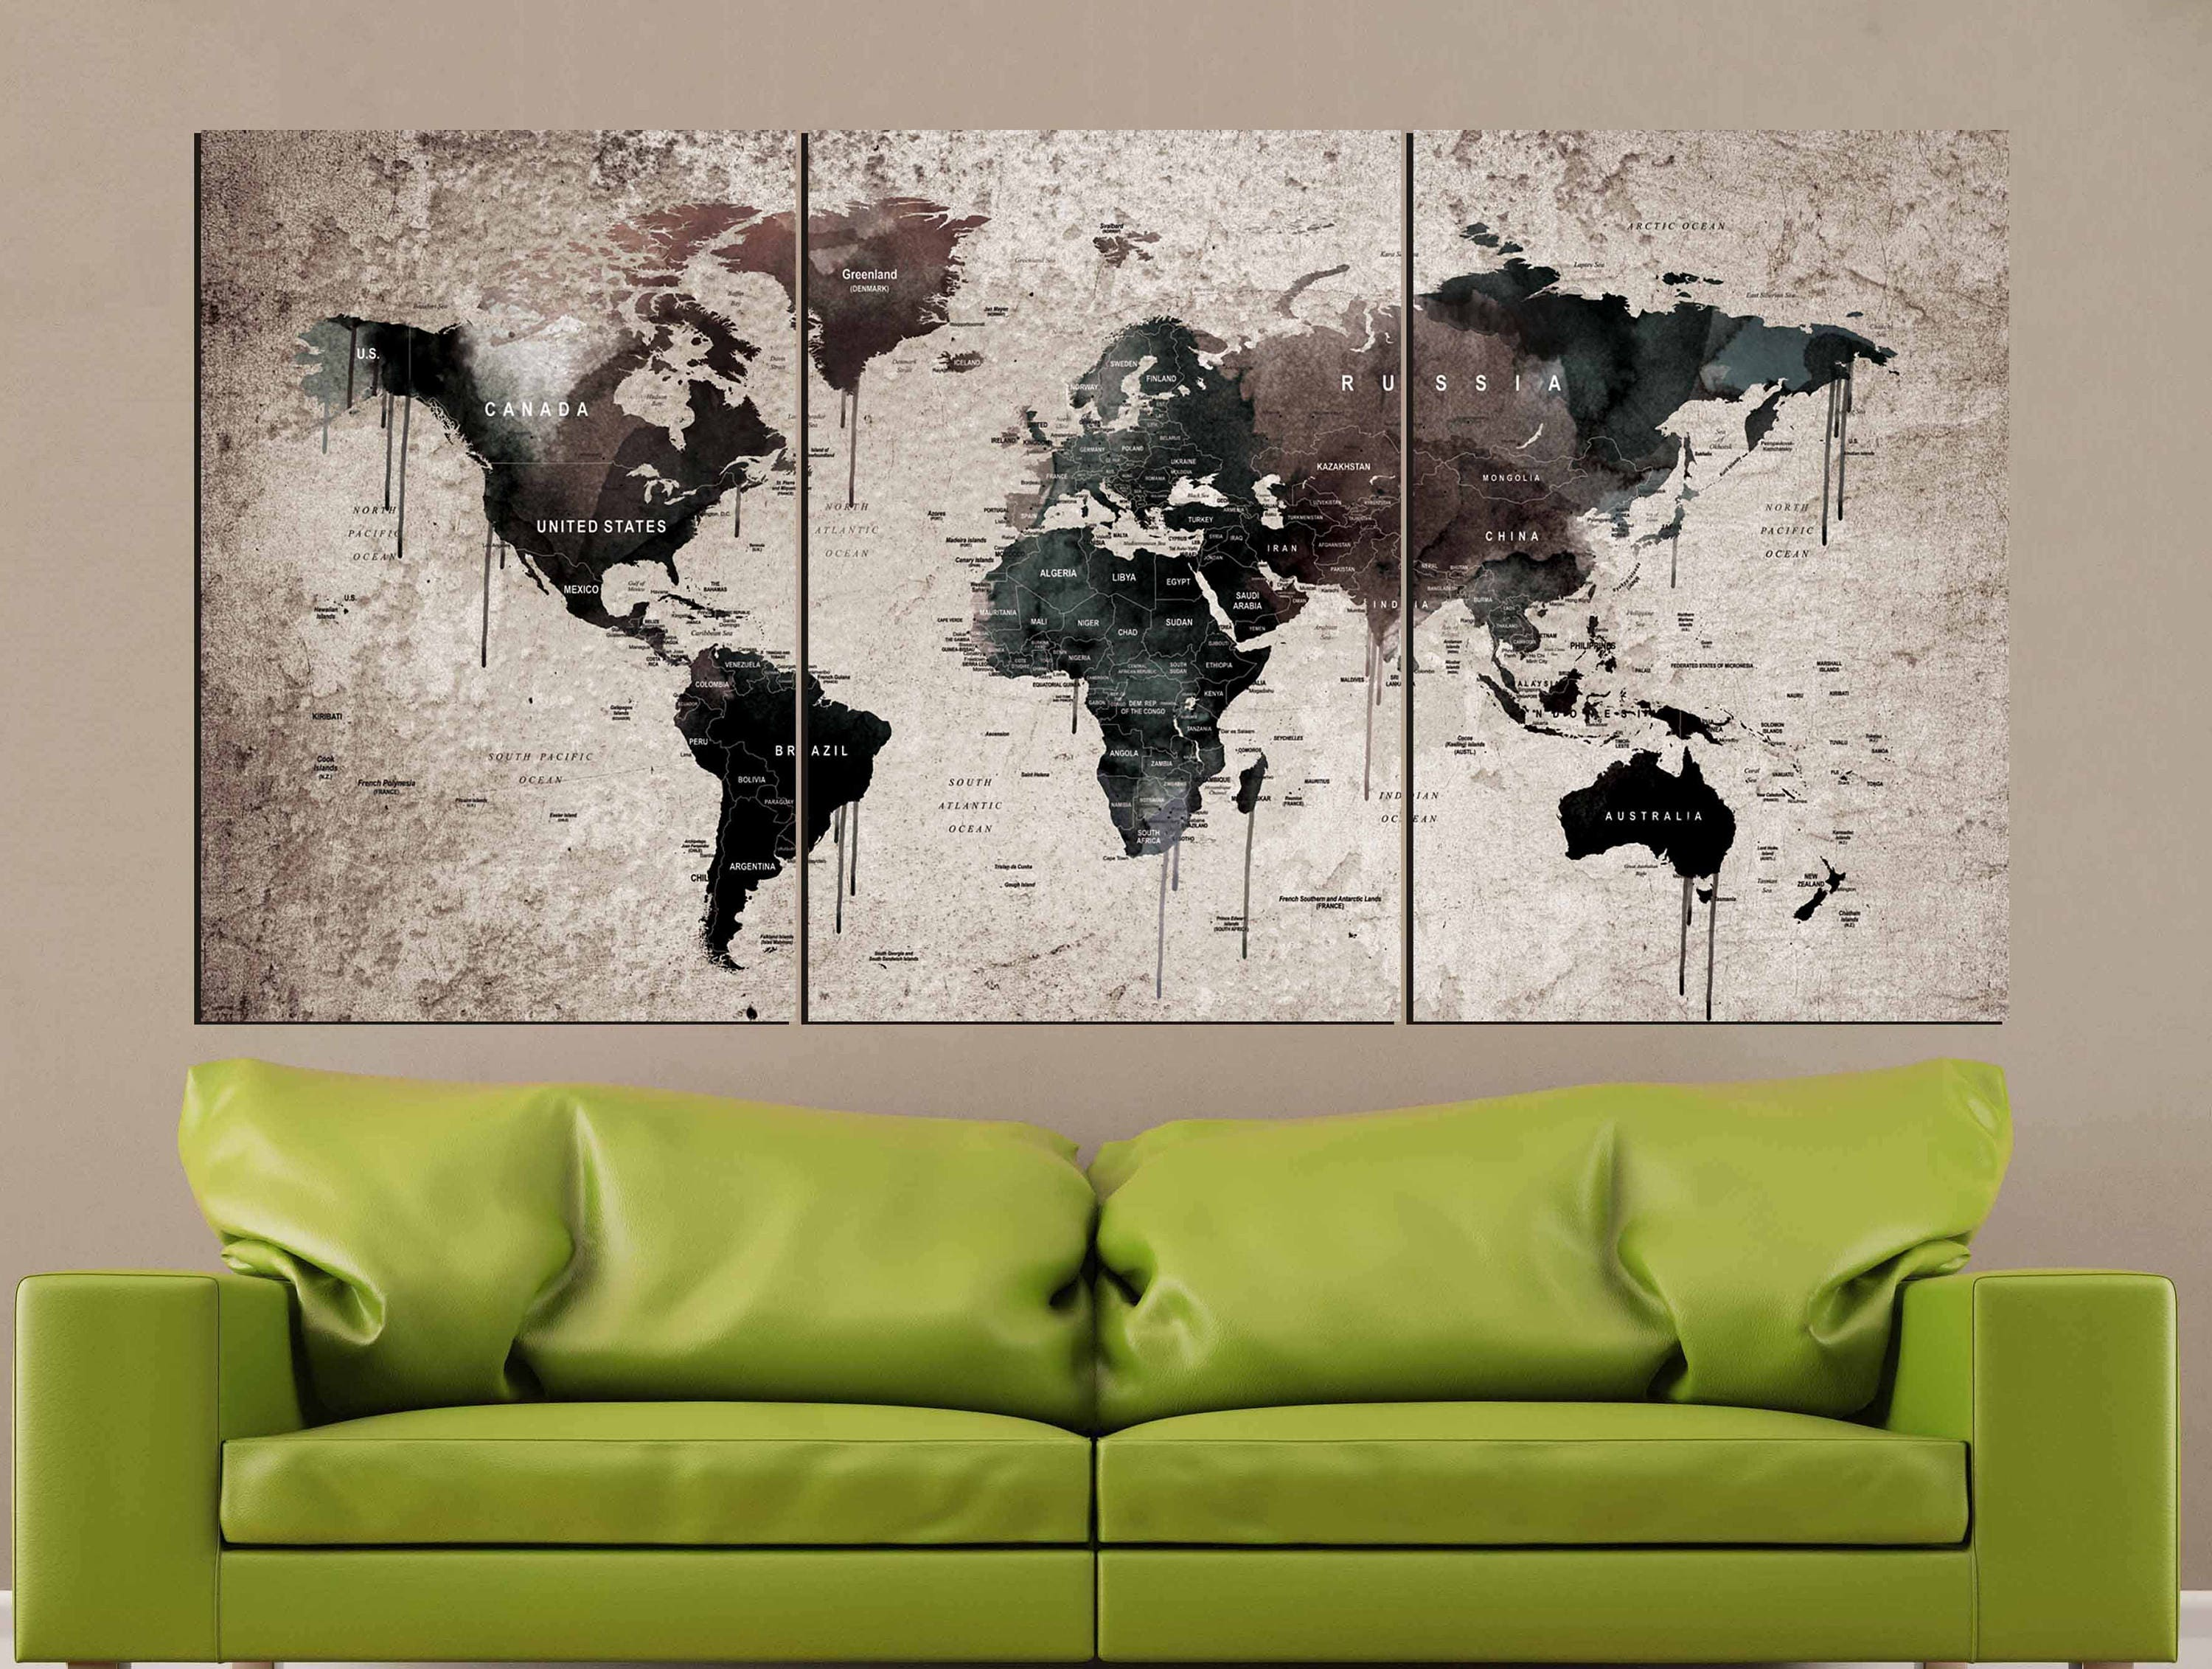 World map vintageworld map wall artvintage map canvas printworld world map vintageworld map wall artvintage map canvas printworld map watercolor artworld map canvas printvintage world mappush pin map gumiabroncs Gallery